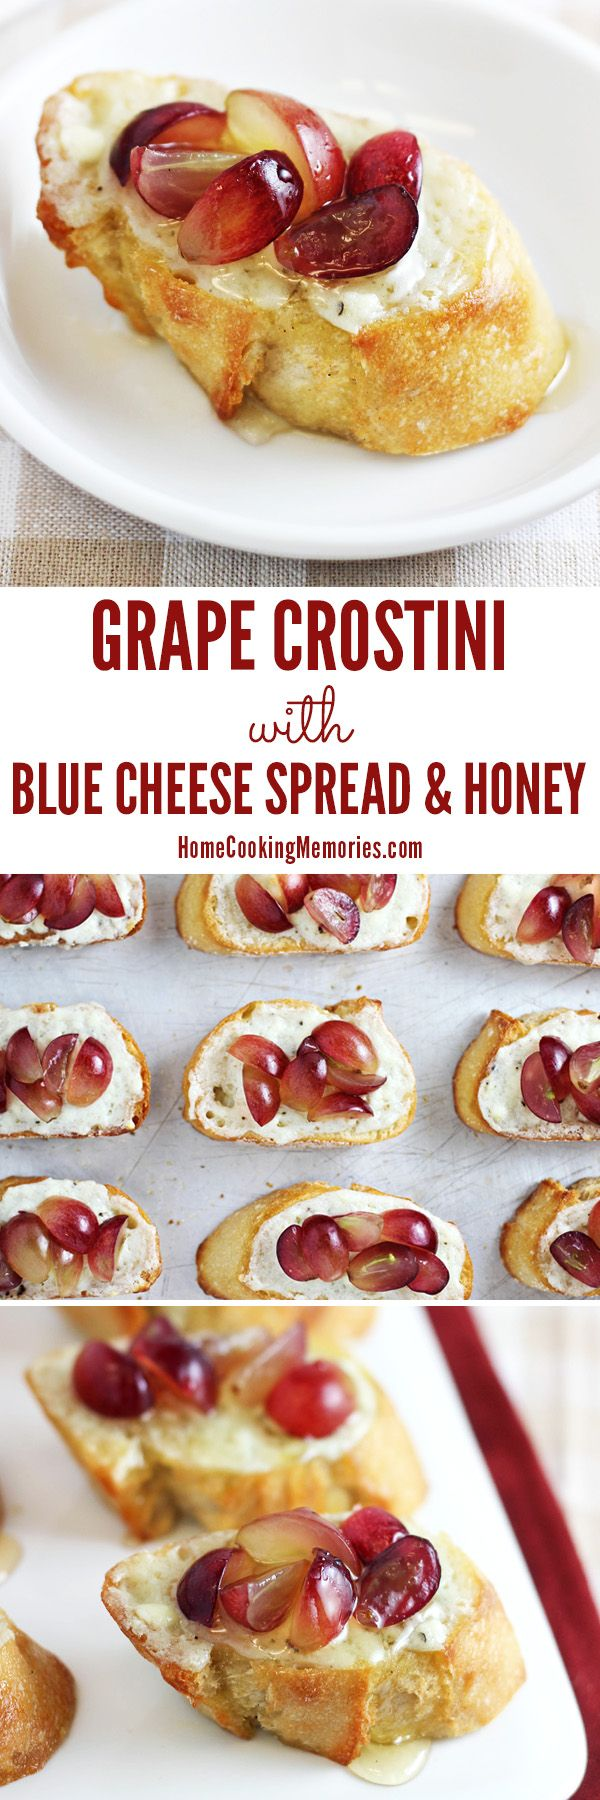 Grape Crostini Appetizer With Blue Cheese Spread And Honey